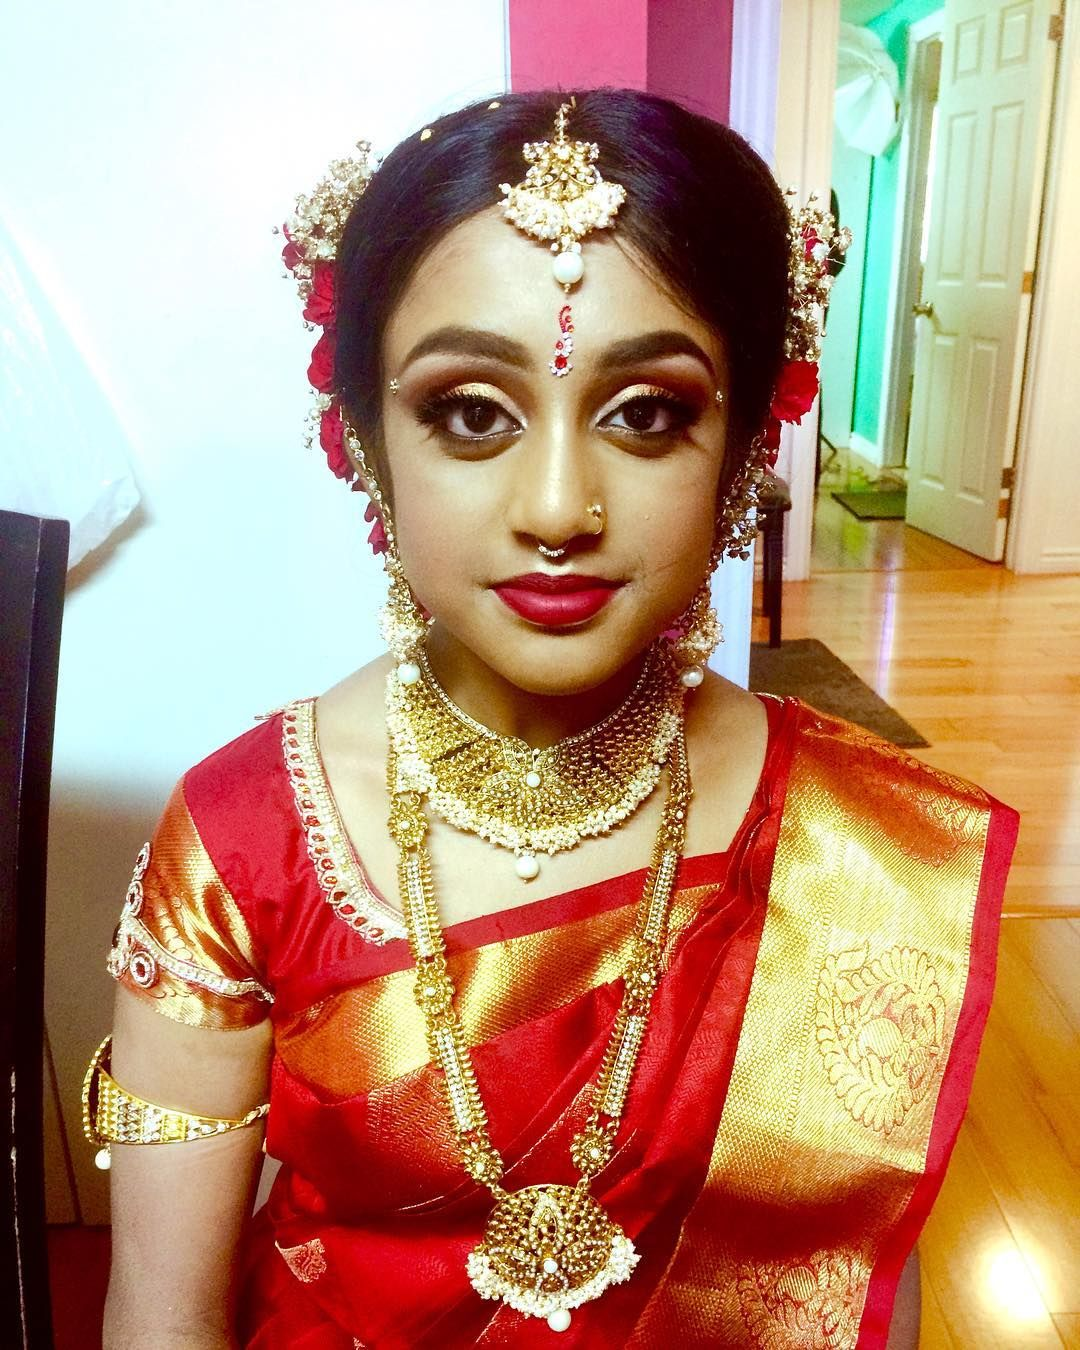 Puberty Ceremony ️ ️ #rs_bridal_makeup #red #puberty # ...